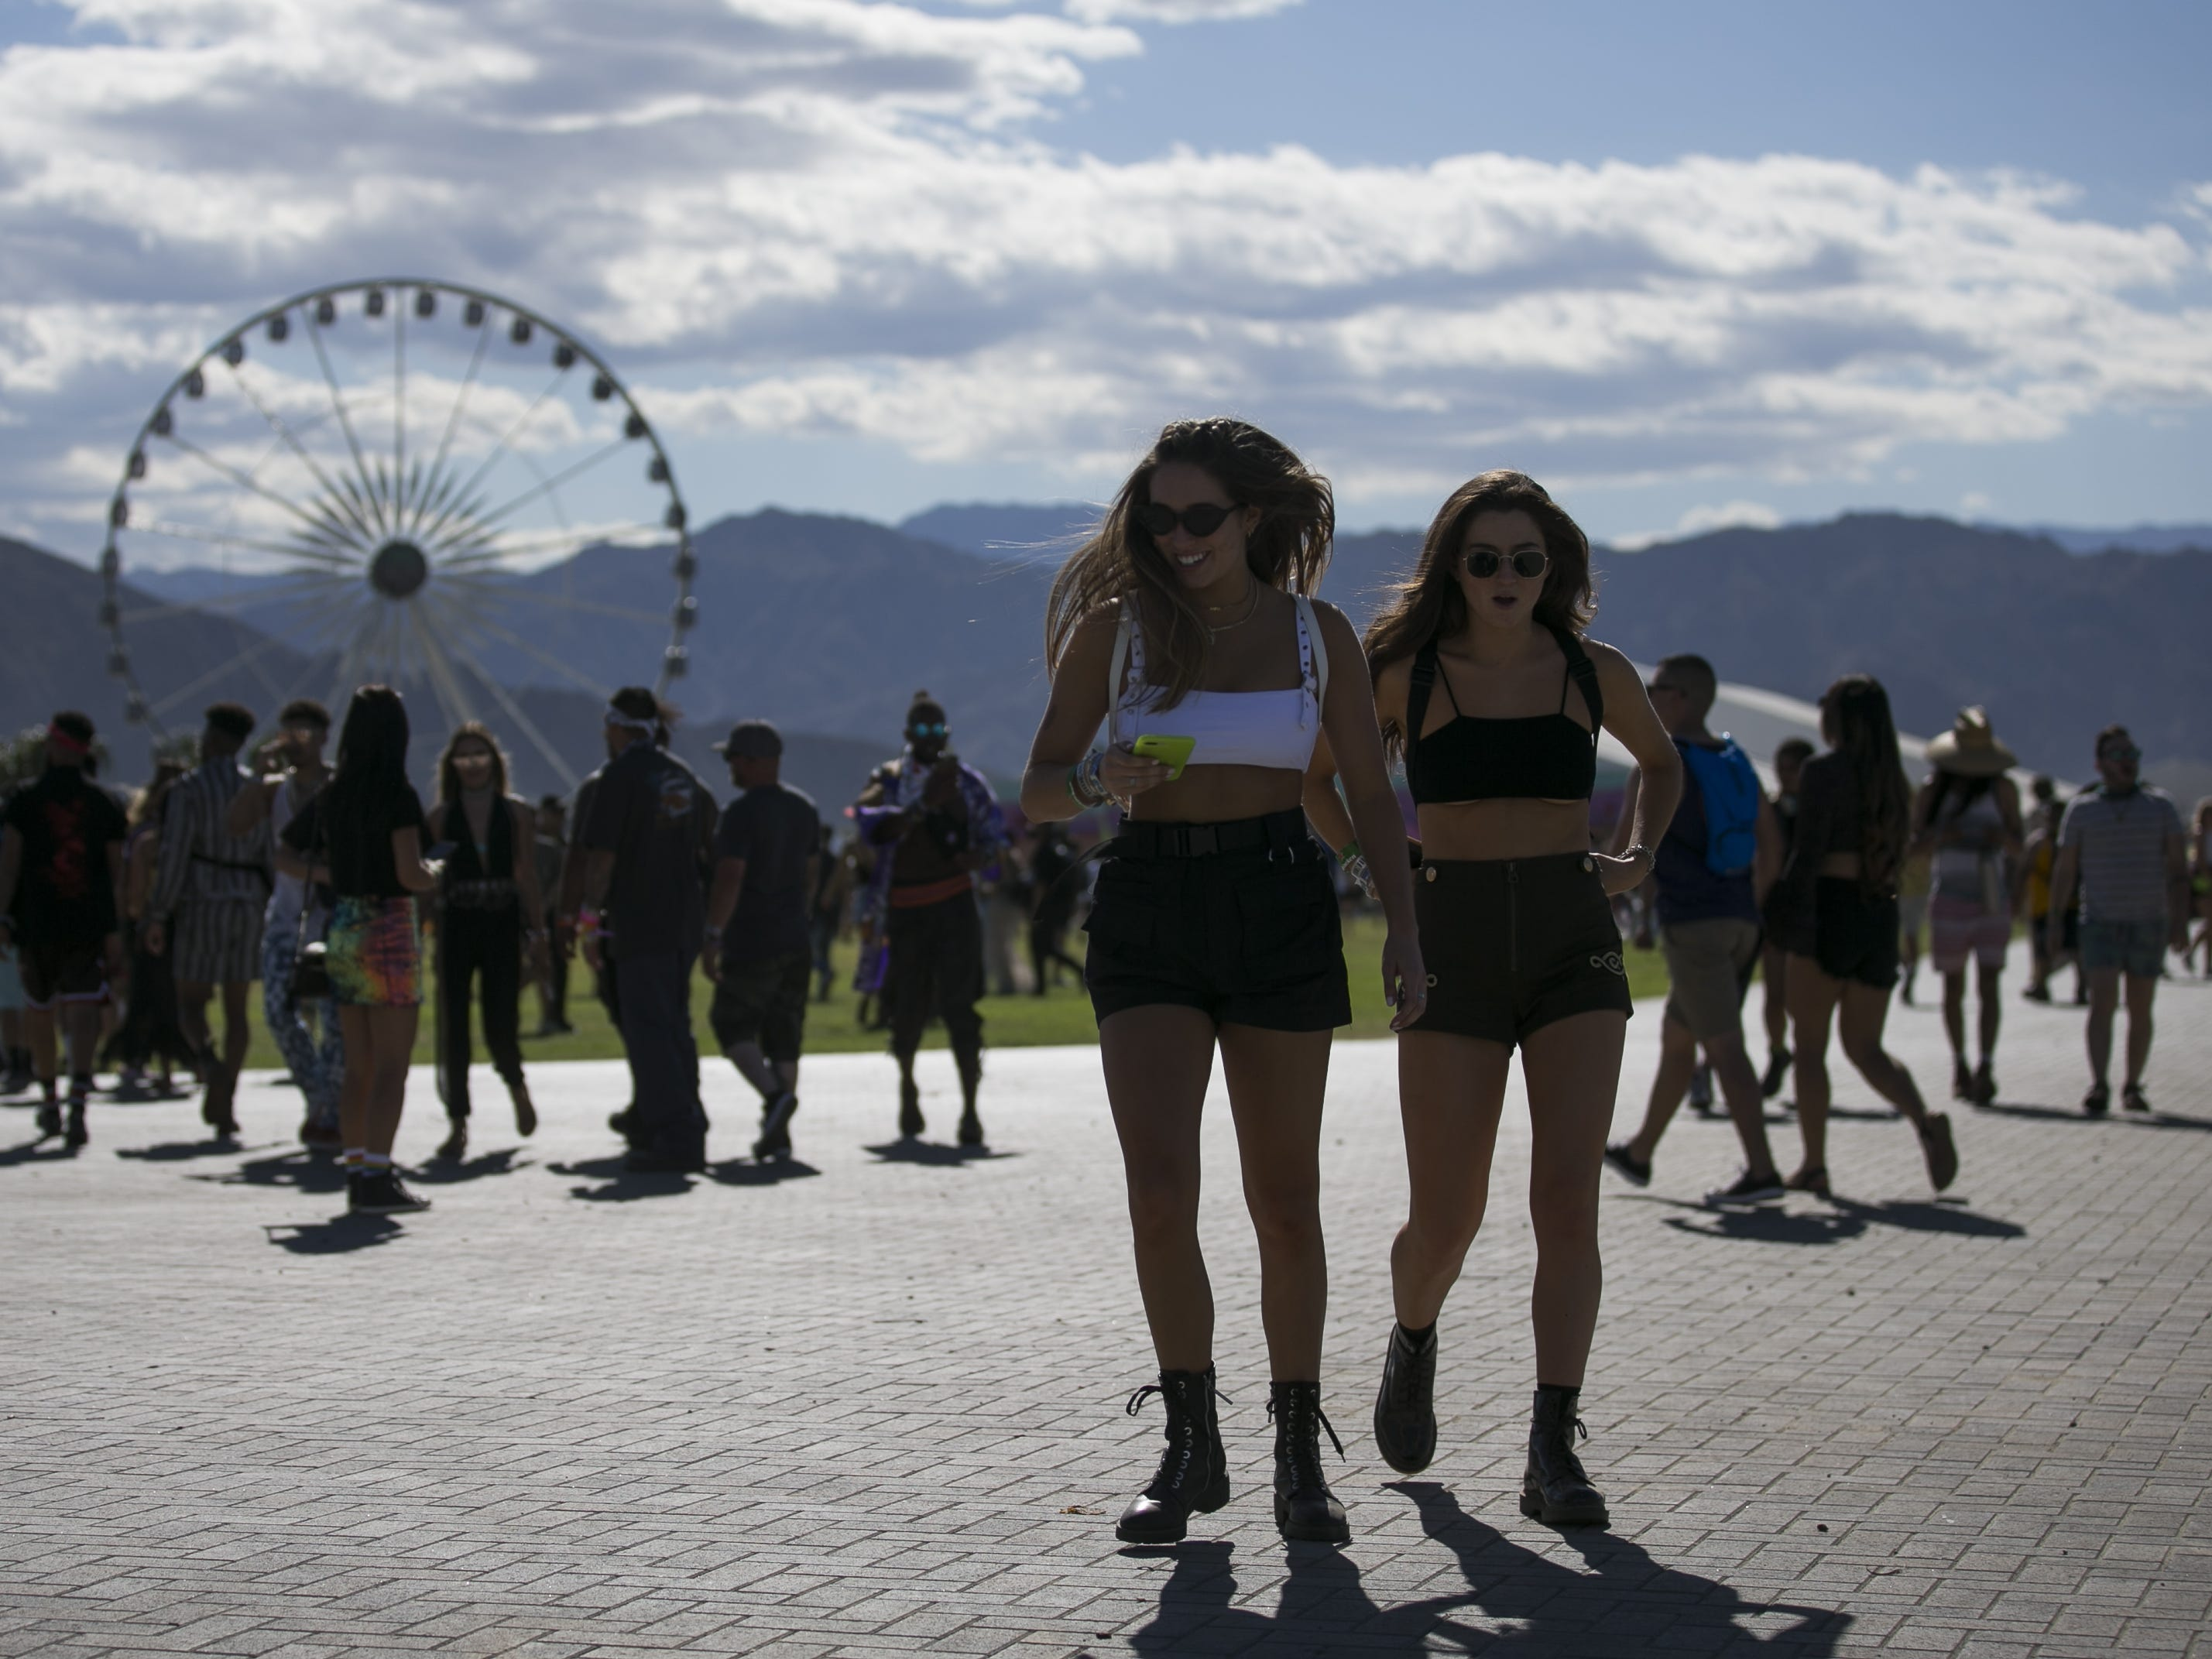 Shelby Silva (right) and Anna Arnett (left) walk through the grounds at the Coachella Valley Music and Arts Festival in Indio, Calif. on April 12, 2019.